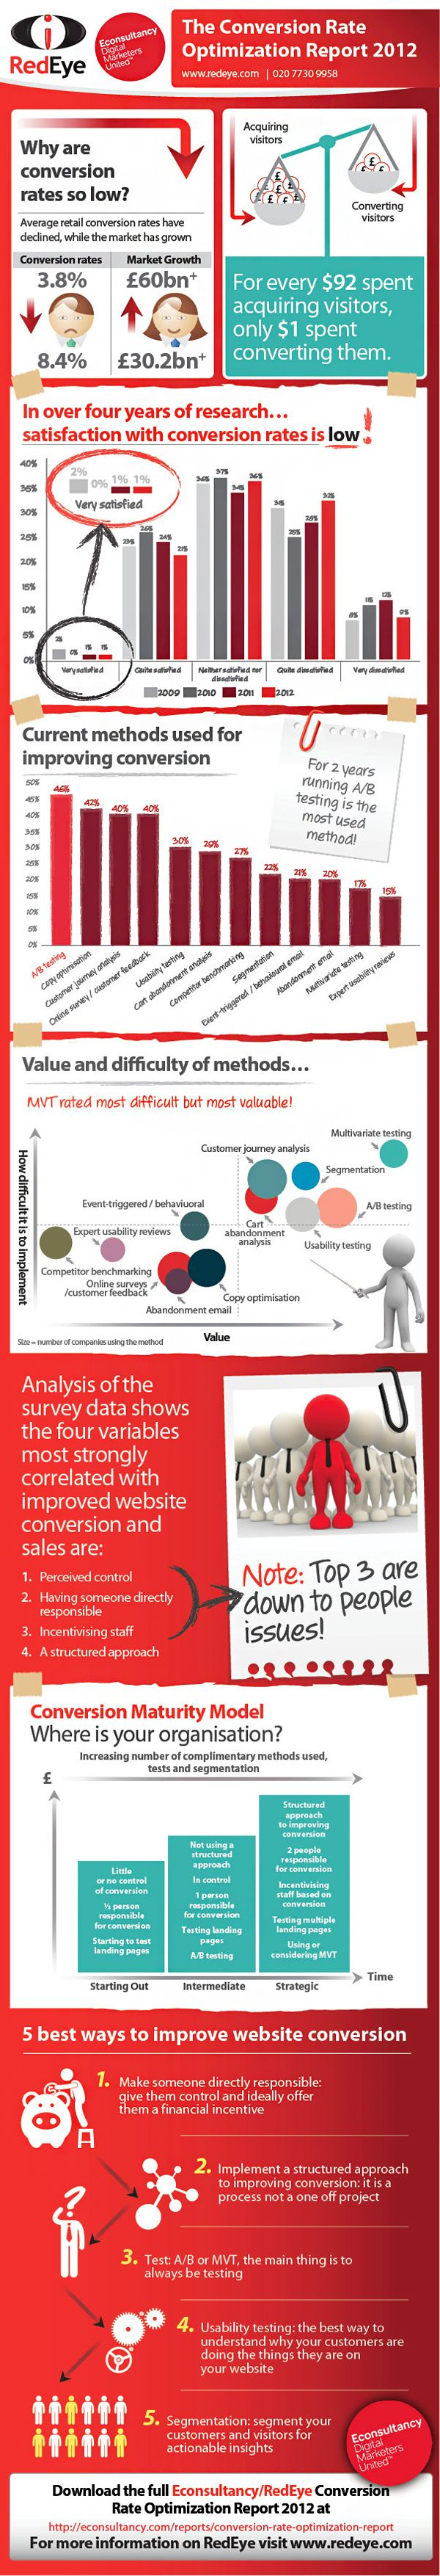 Conversion Rate Optimization Report 2012 #infographic (repinned by @ricardollera)